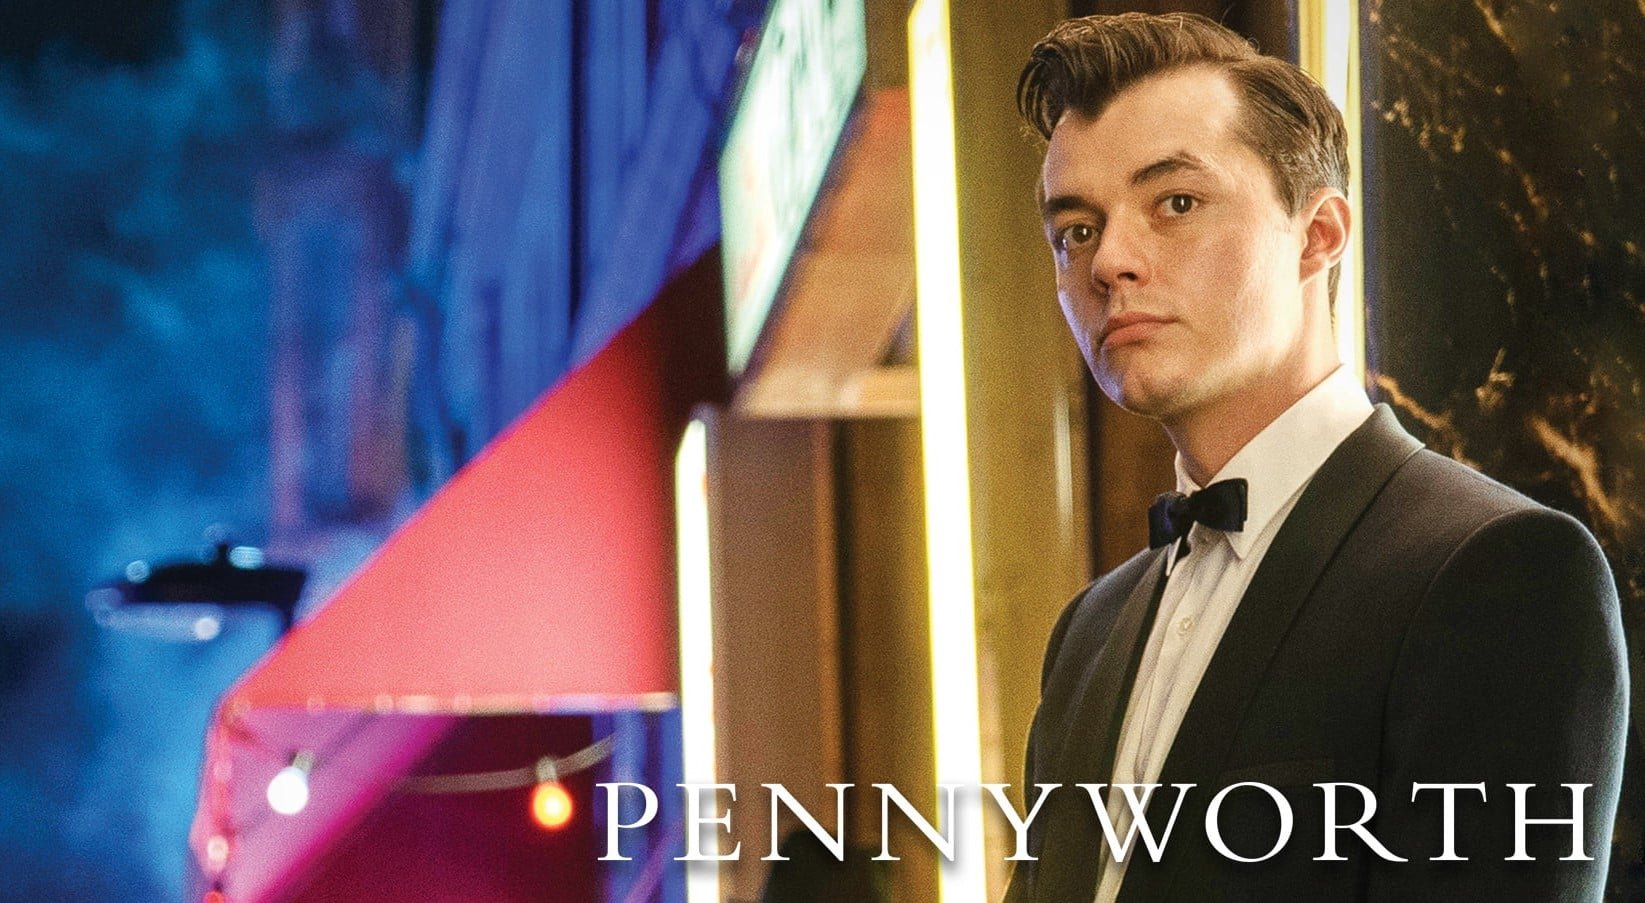 EPIX Announces A Premiere Date For 'Pennyworth' With A New Trailer And Photos